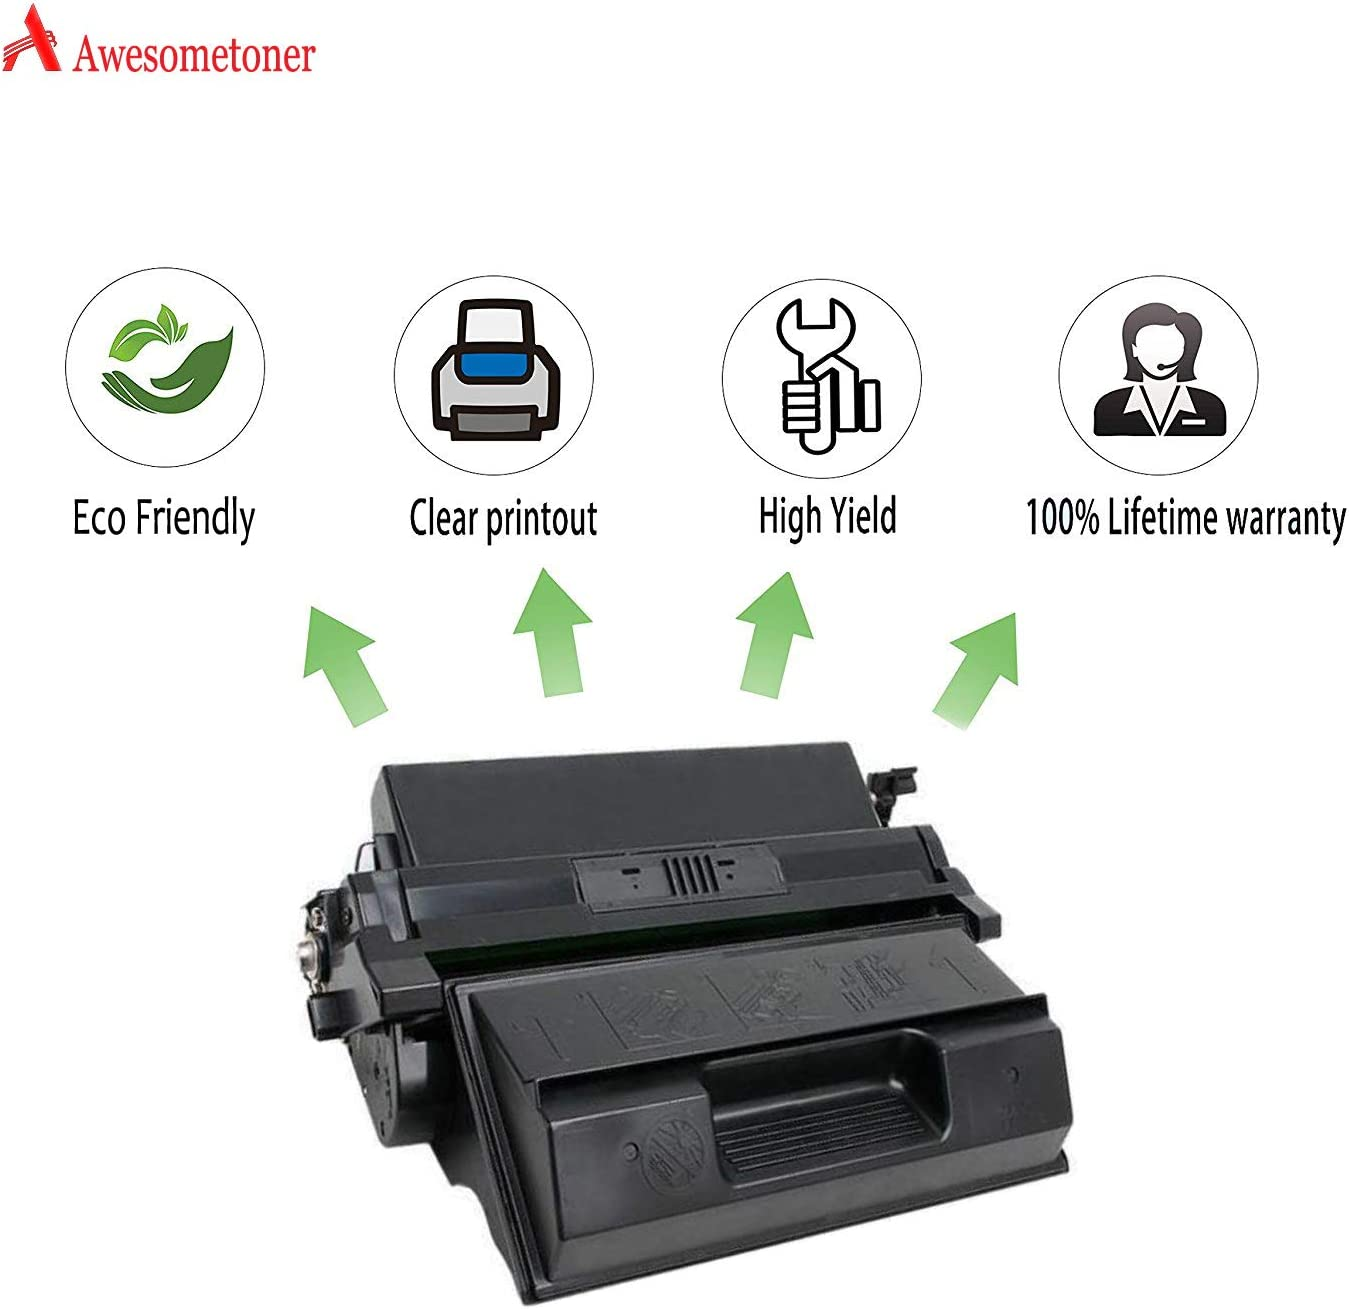 Black, 3-Pack Awesometoner Compatible Toner Cartridge Replacement for Xerox 113R446 use with Phaser 4400 N2125